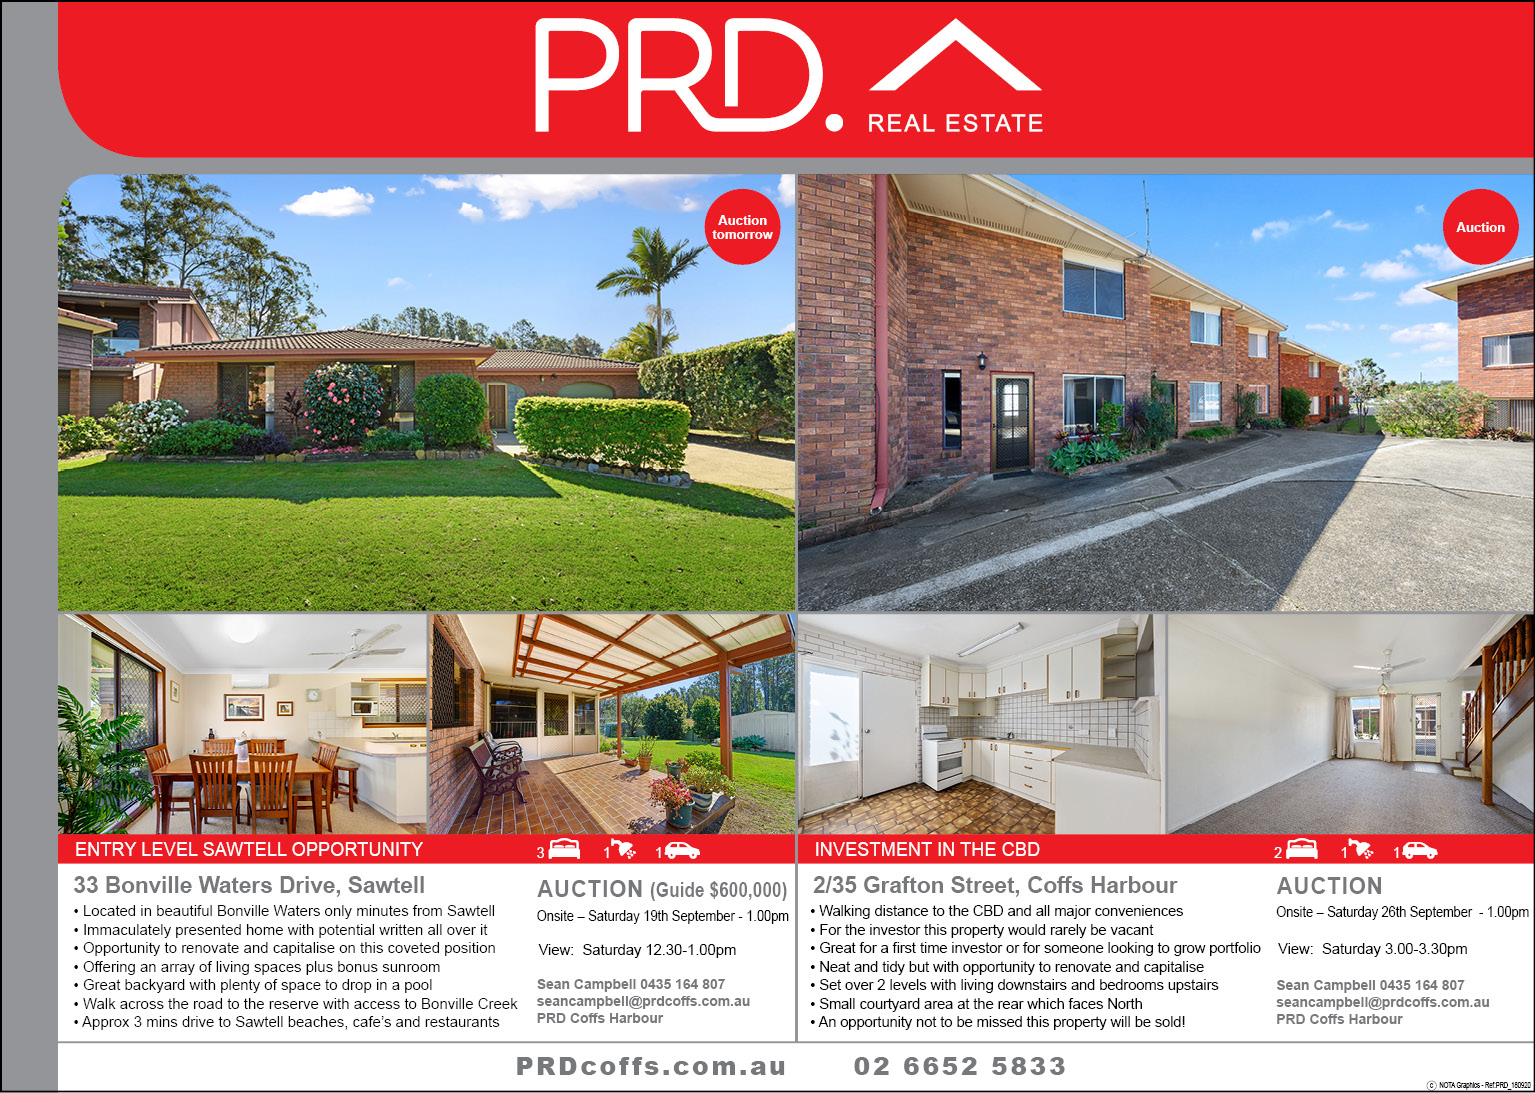 PRD Real Estate Coffs Harbour